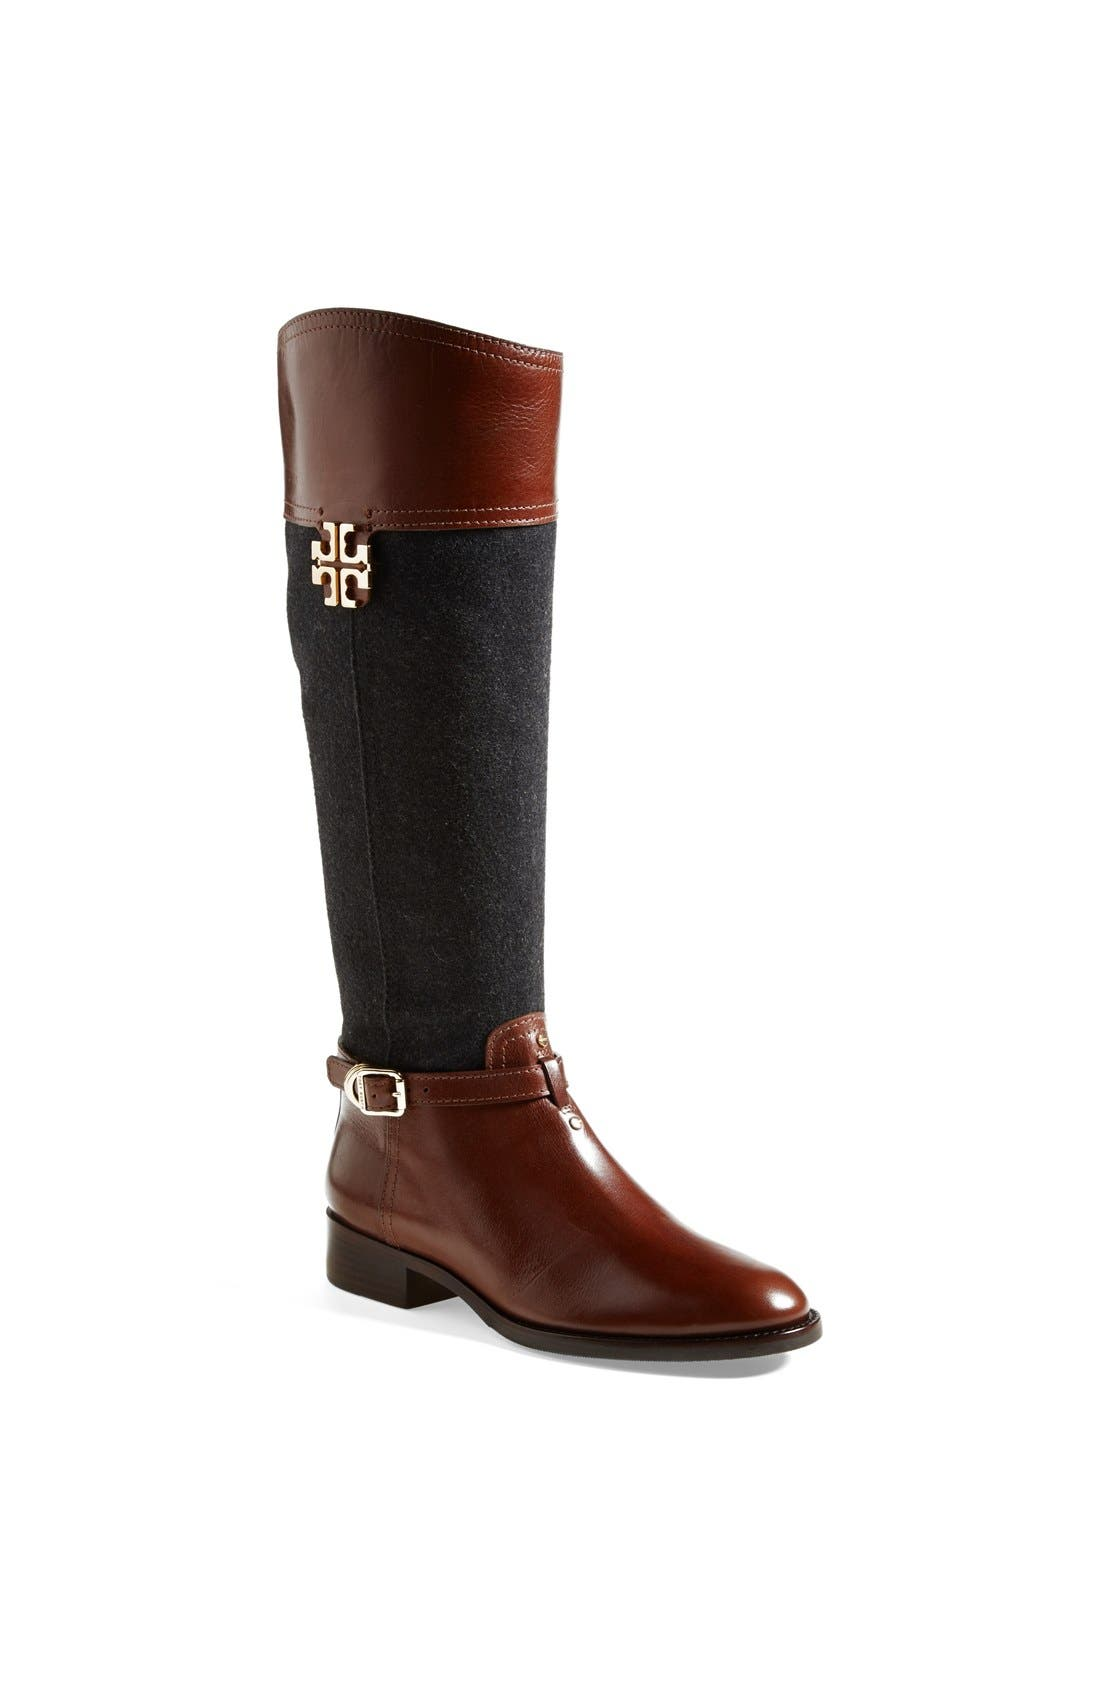 Alternate Image 1 Selected - Tory Burch 'Eloise' Riding Boot (Nordstrom Online Exclusive)(Women)